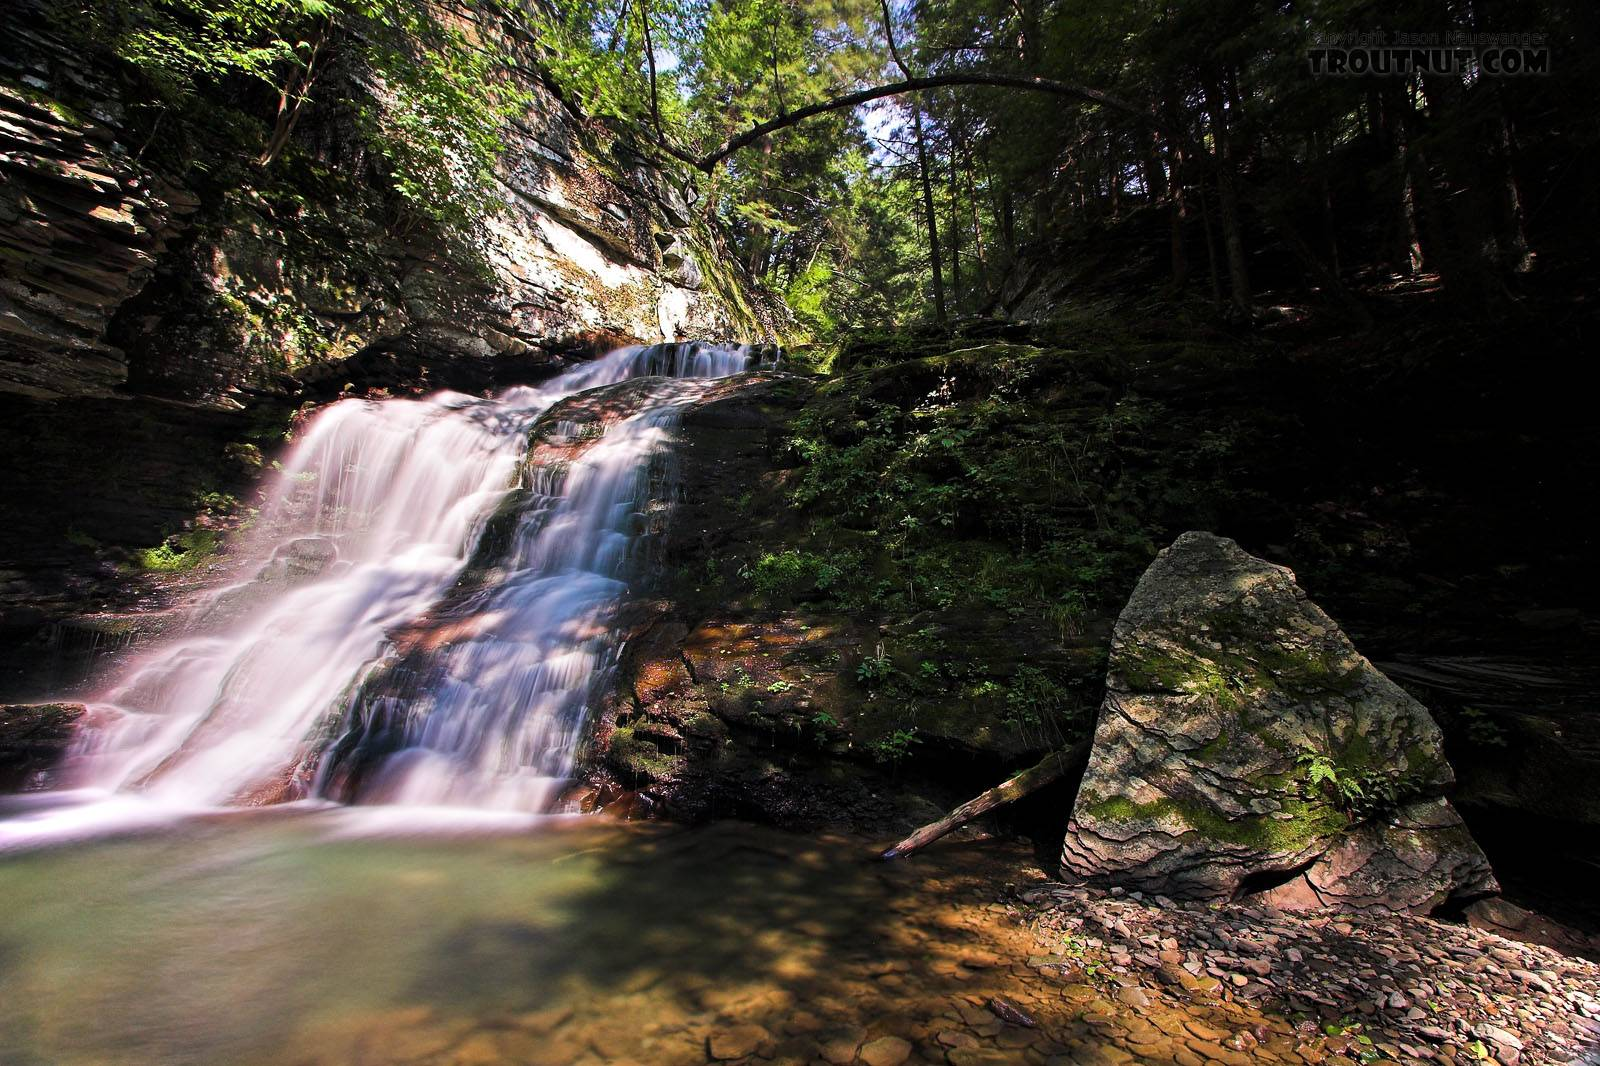 I caught several wild and colorful 8-9 inch brook trout in the clear little pool below this waterfall. From Mystery Creek # 89 in New York.